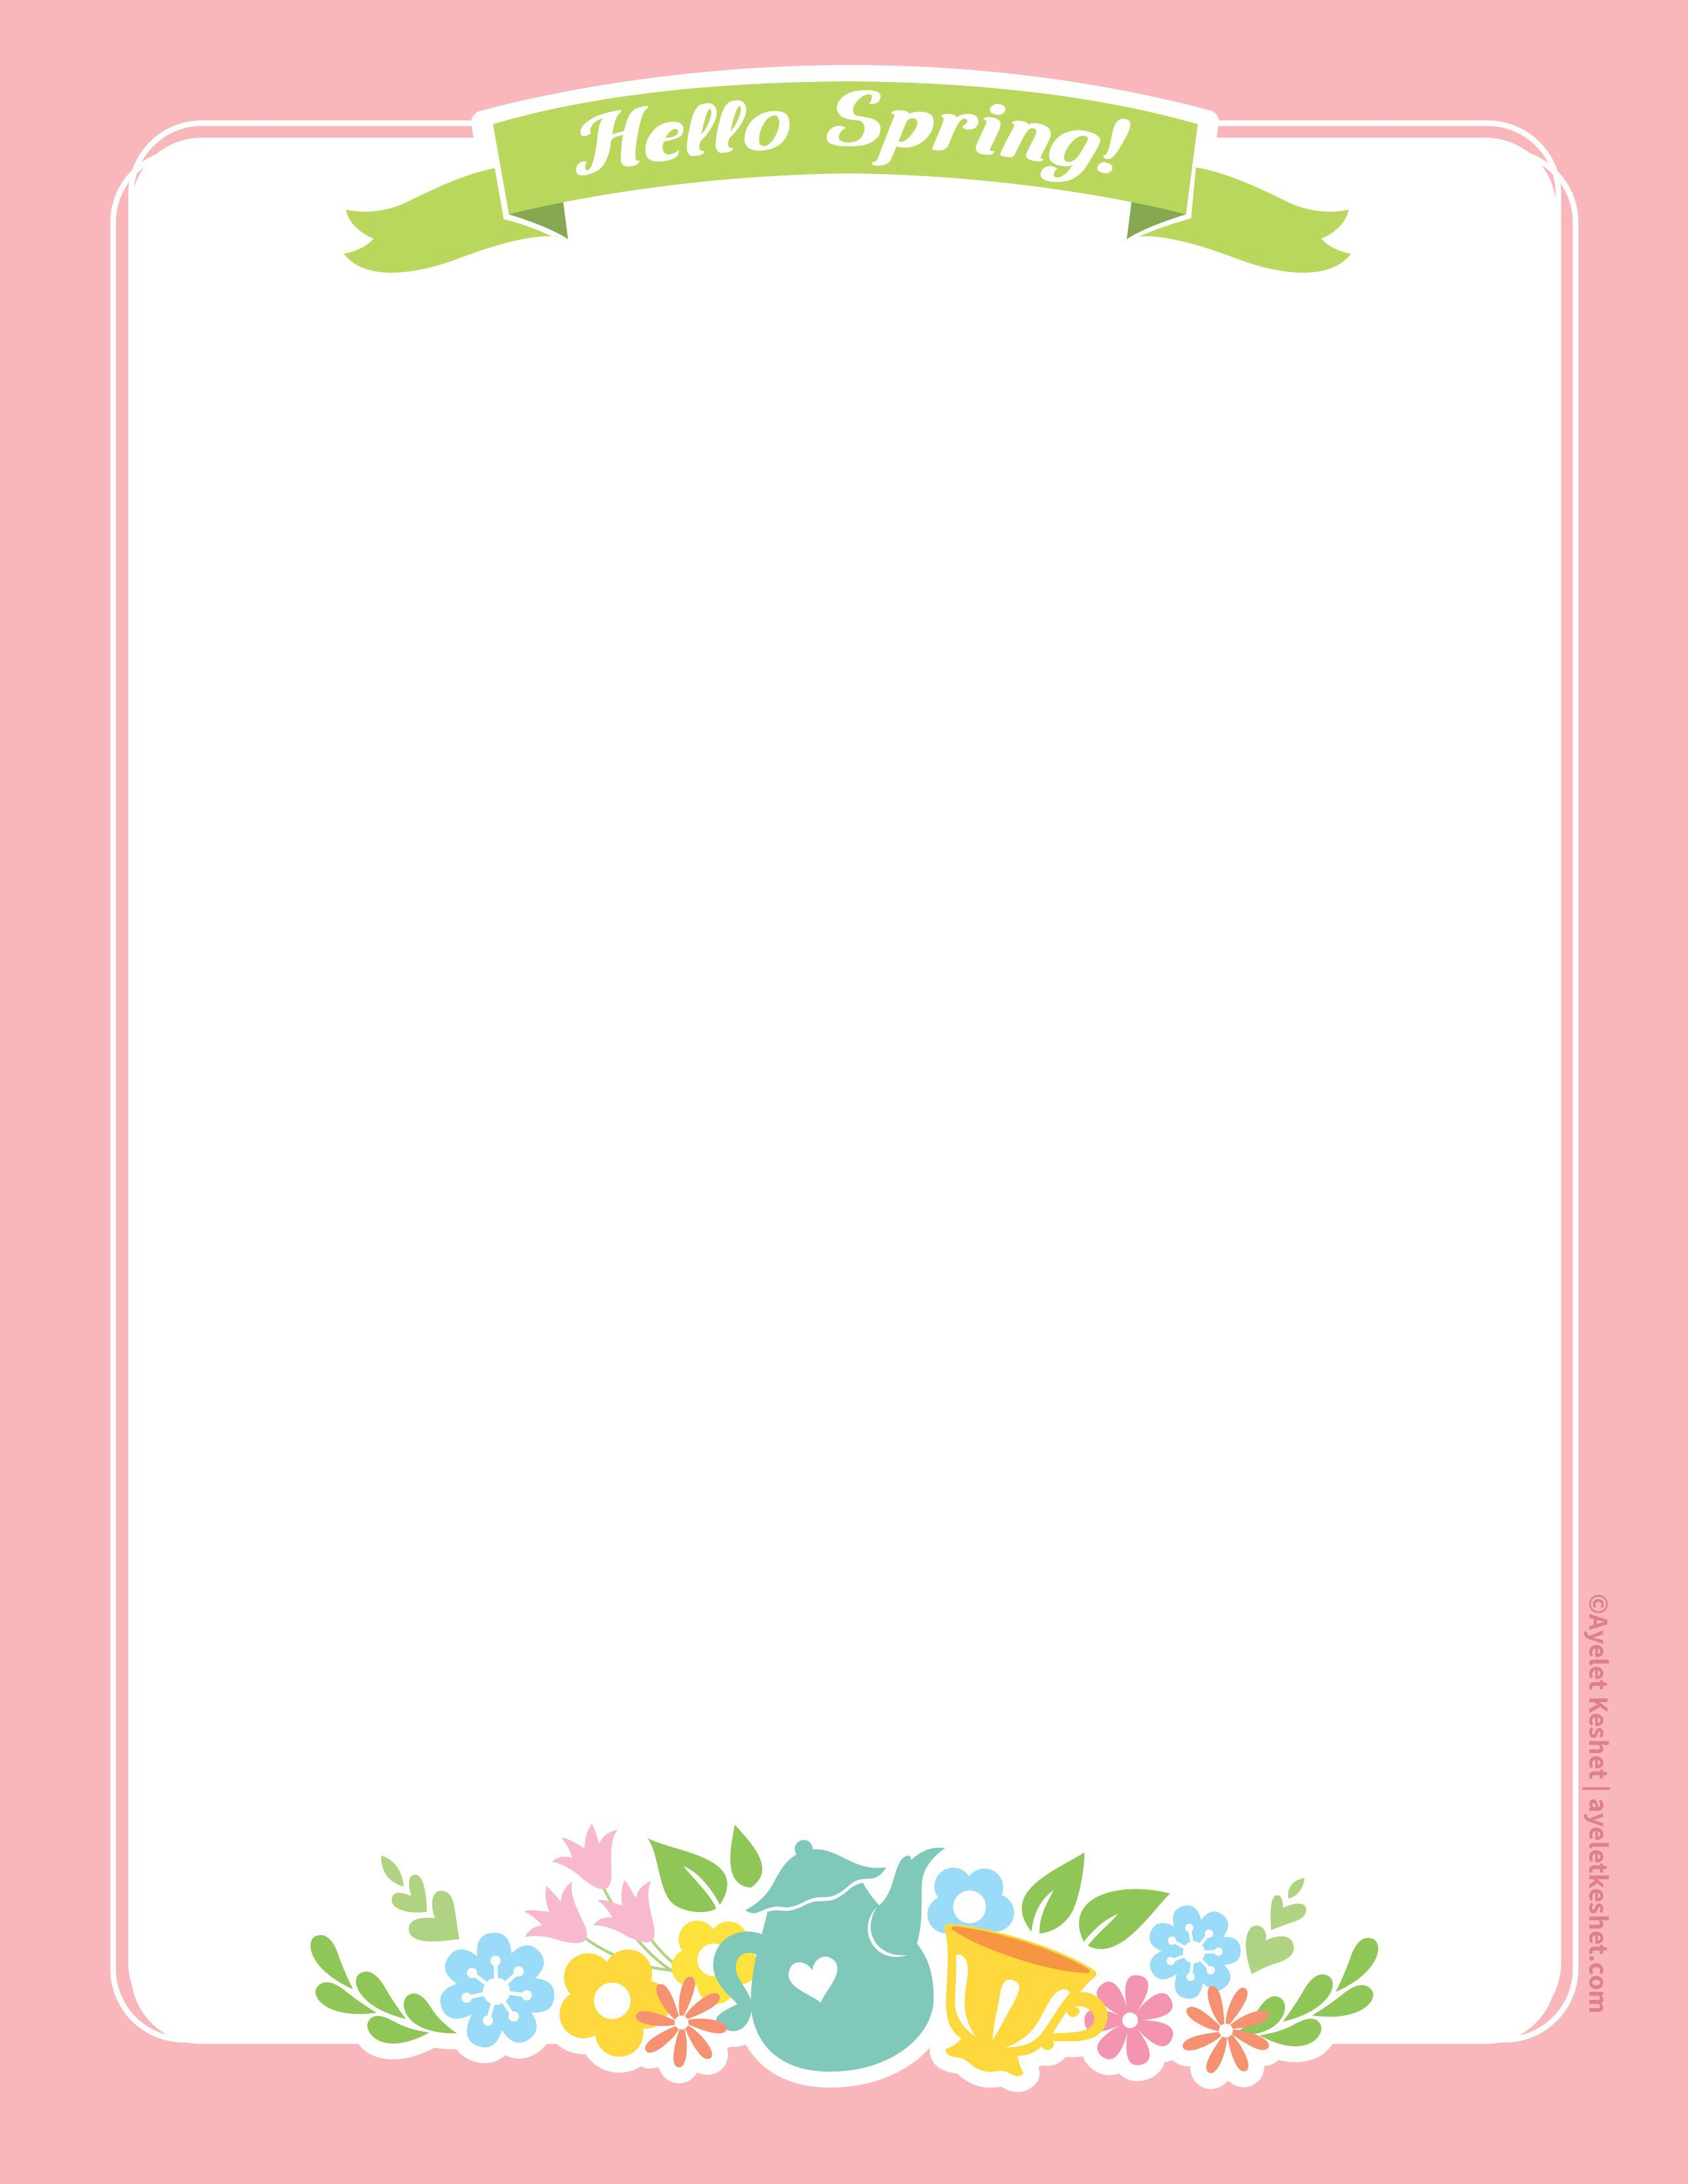 010 Imposing Free Printable Stationery Paper Template Example  TemplatesFull